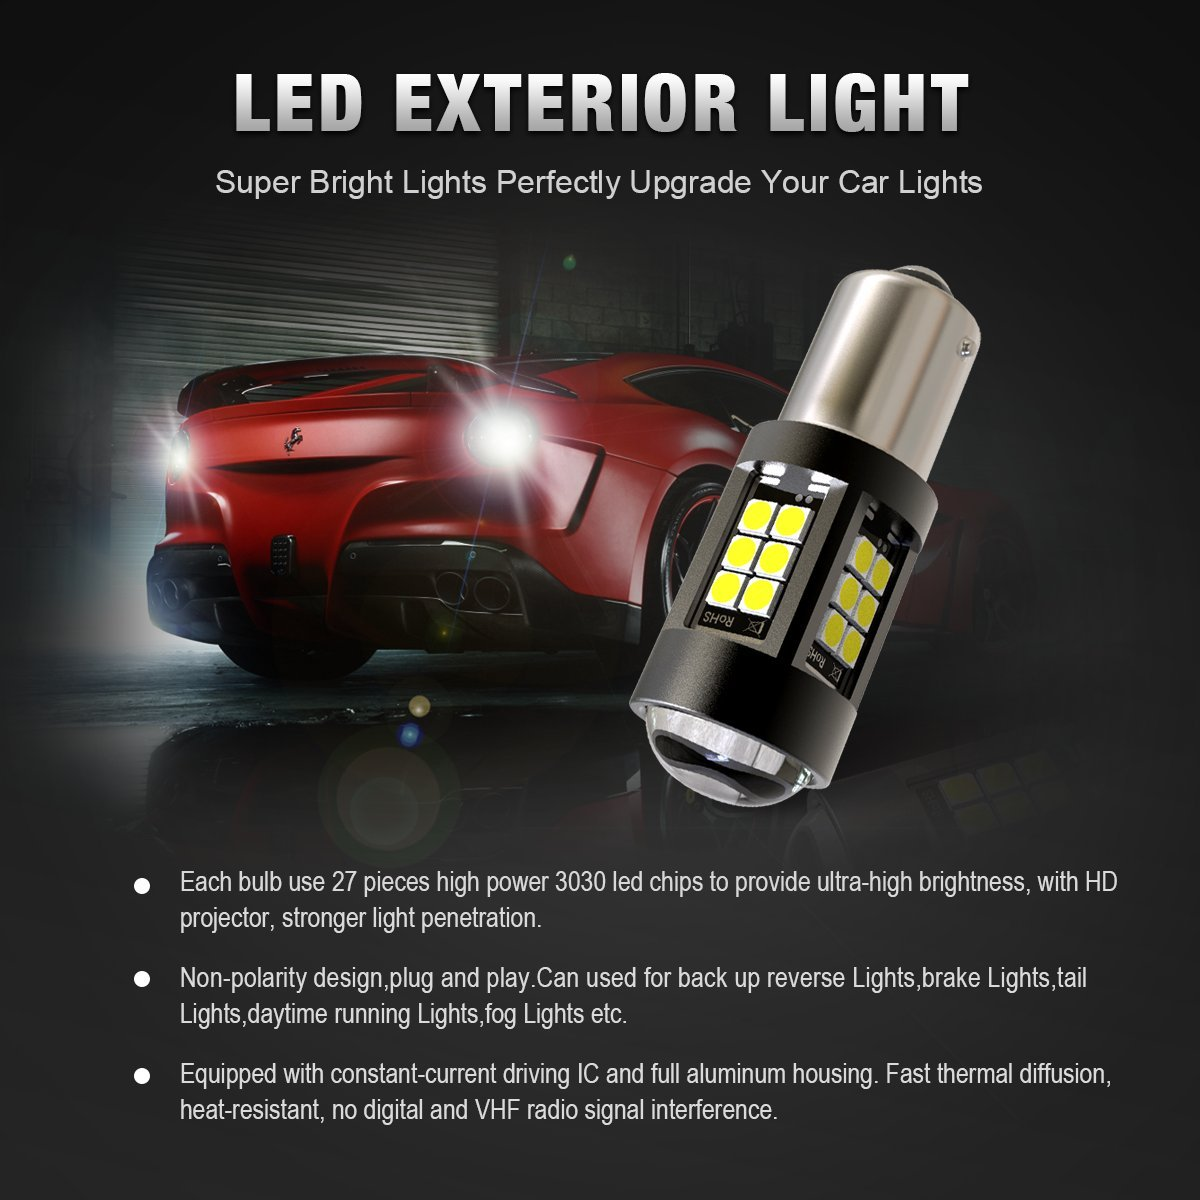 White KF-10157 KAFEEK 2x Extremely Bright 3030 Chipsets 1400 Lumens 1156 1141 1003 7506 LED Bulbs with Projector for Backup Reverse Lights Brake Lights Tail Lights